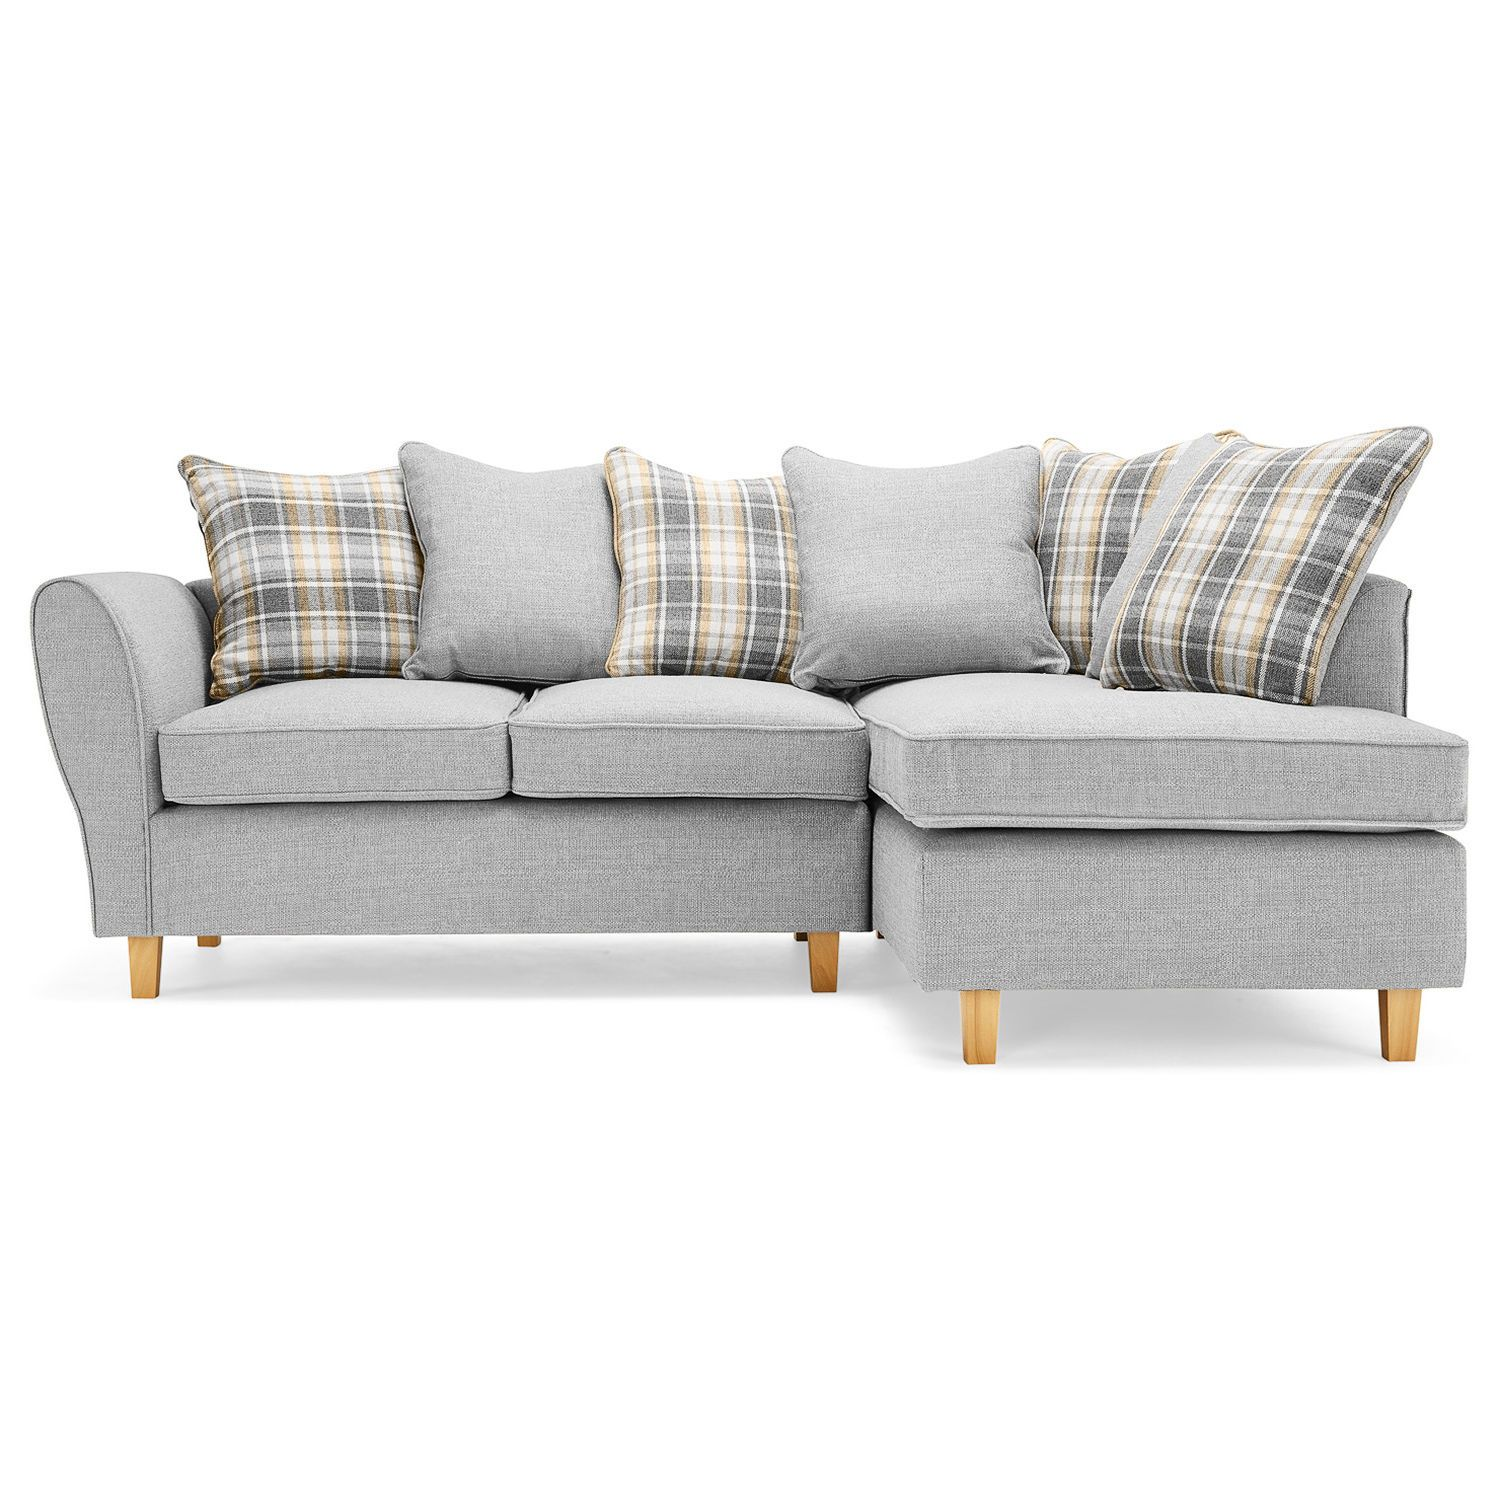 Sofas Delivered Next Day Foam Cushion For Sofa India Delivery Baci Living Room